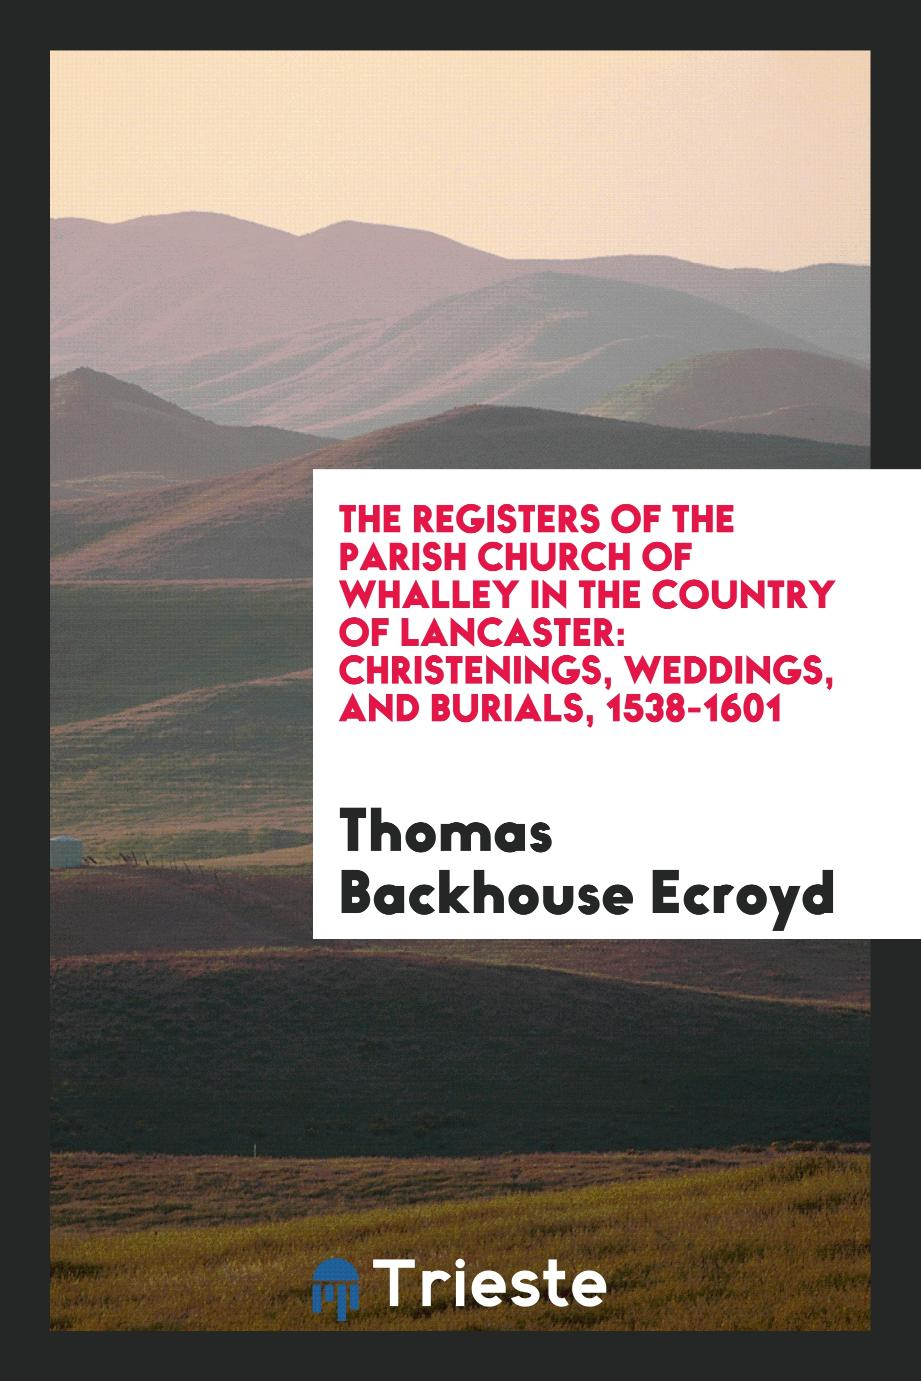 The Registers of the Parish Church of Whalley in the Country of Lancaster: Christenings, Weddings, and Burials, 1538-1601